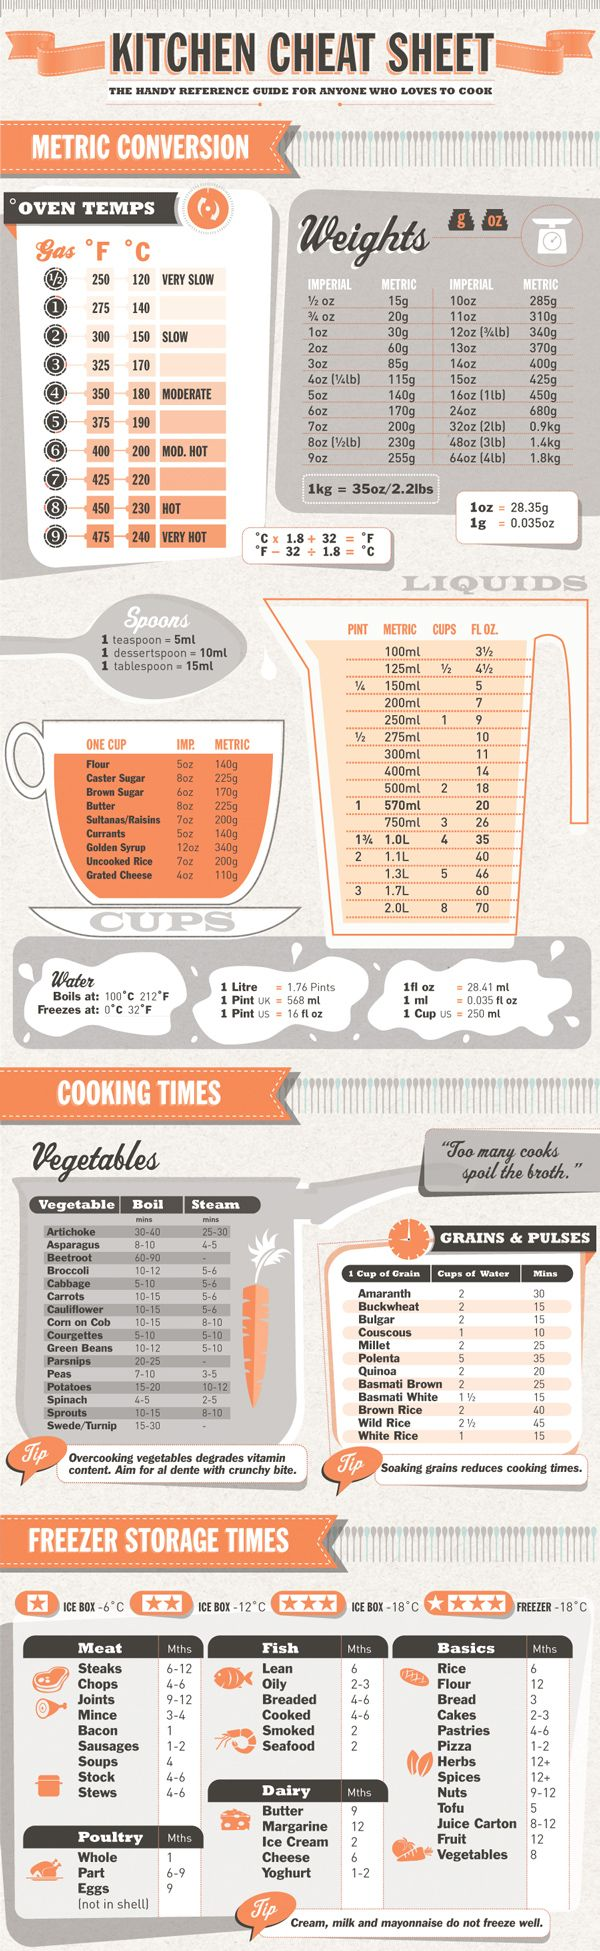 FleaingFrance.....everything you can think of in one handy chart. Perfect for those of us that are living in the metric zone but cooking with standard US recipes!